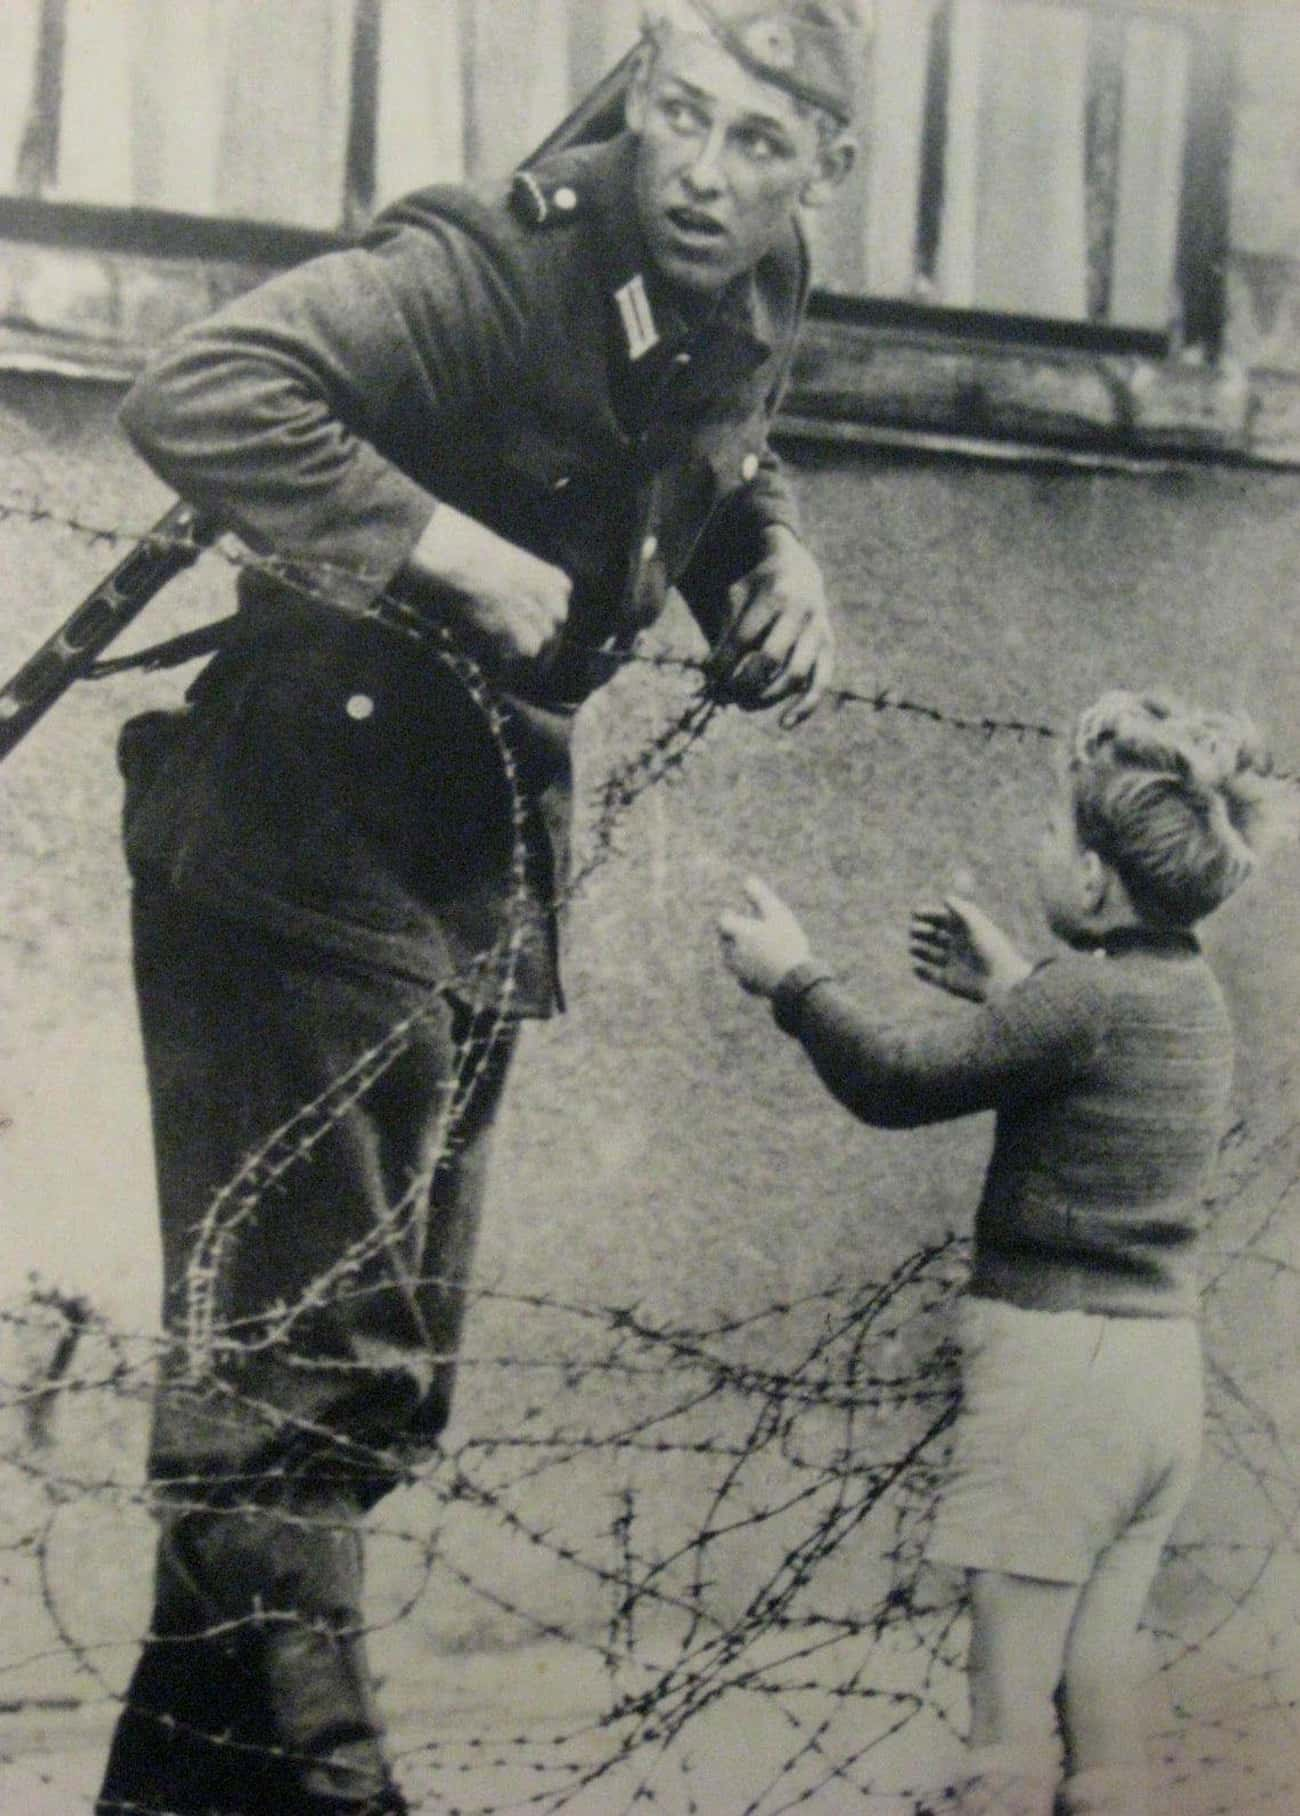 One East German Soldier Flouted His Orders To Reunite A Little Boy With His Family